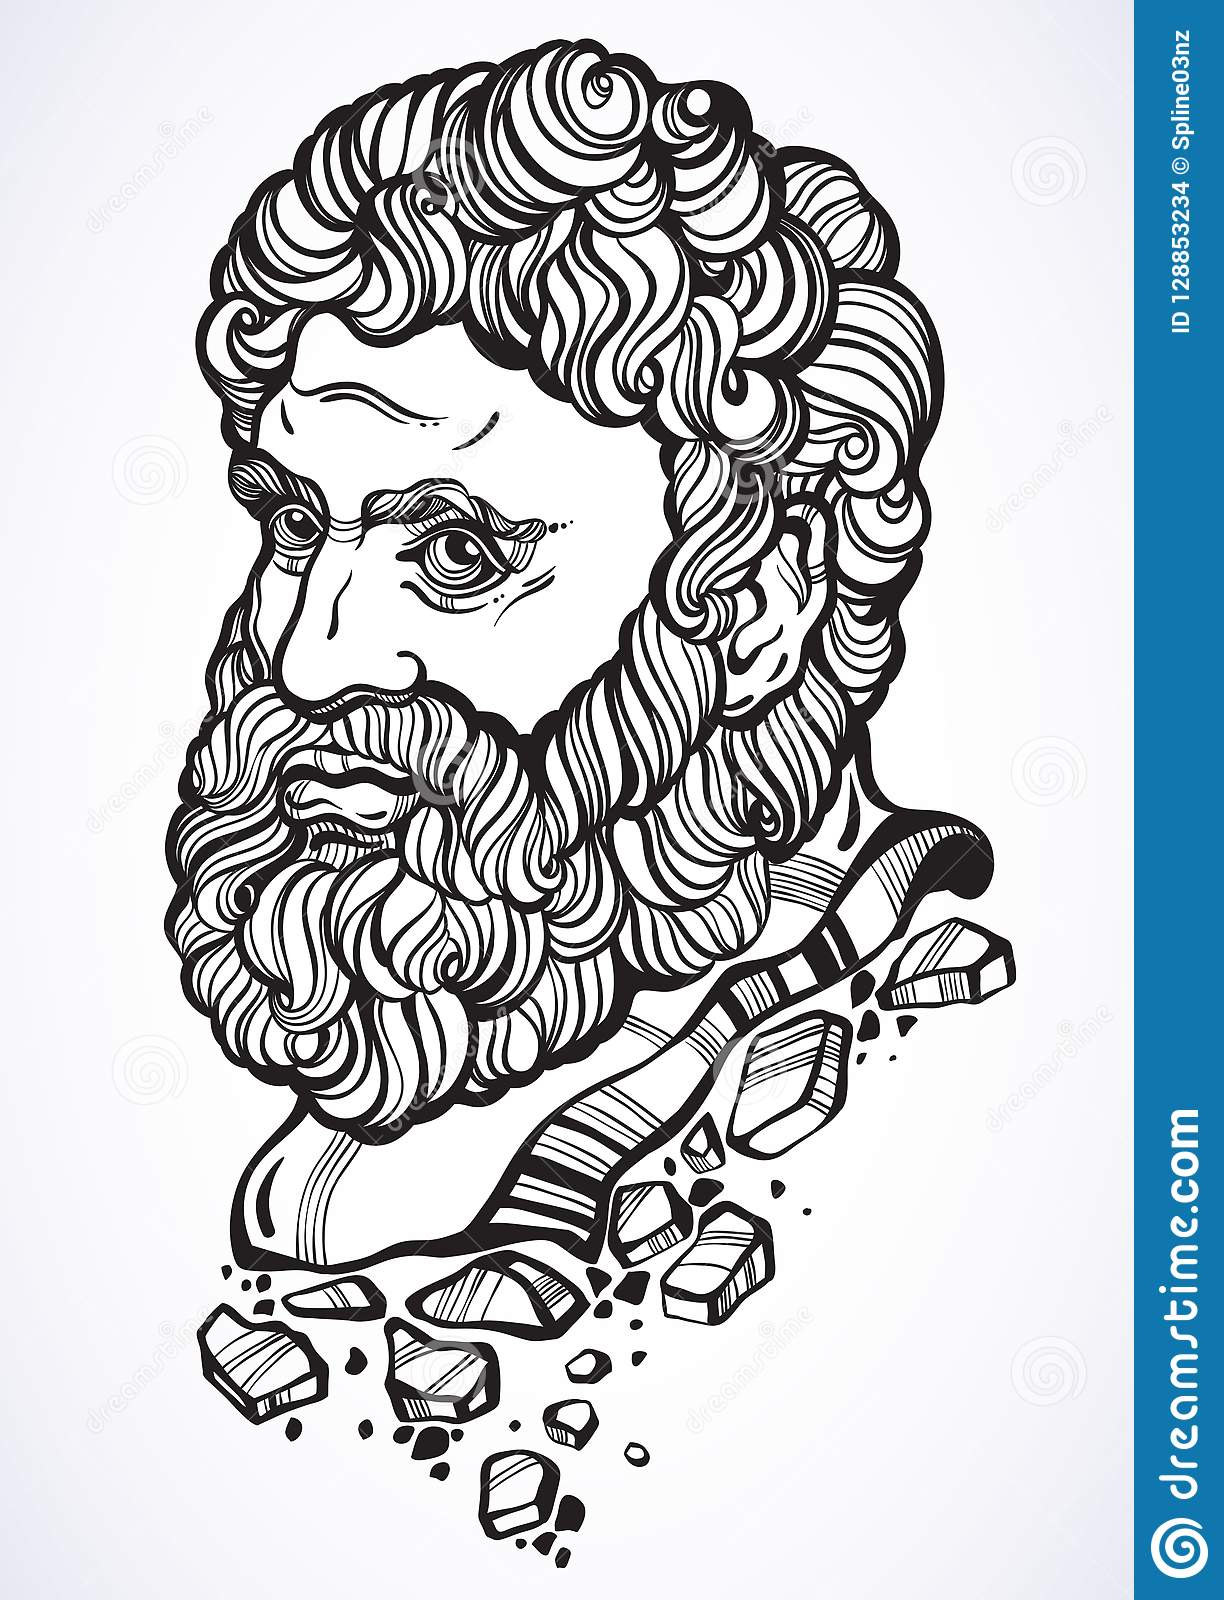 Heracles The Mythological Hero Of Ancient Greece Hand Drawn Beautiful Vector Artwork Isolated Myths And Legends Tattoo Art Stock Vector Illustration Of Counrty Isolated 128853234